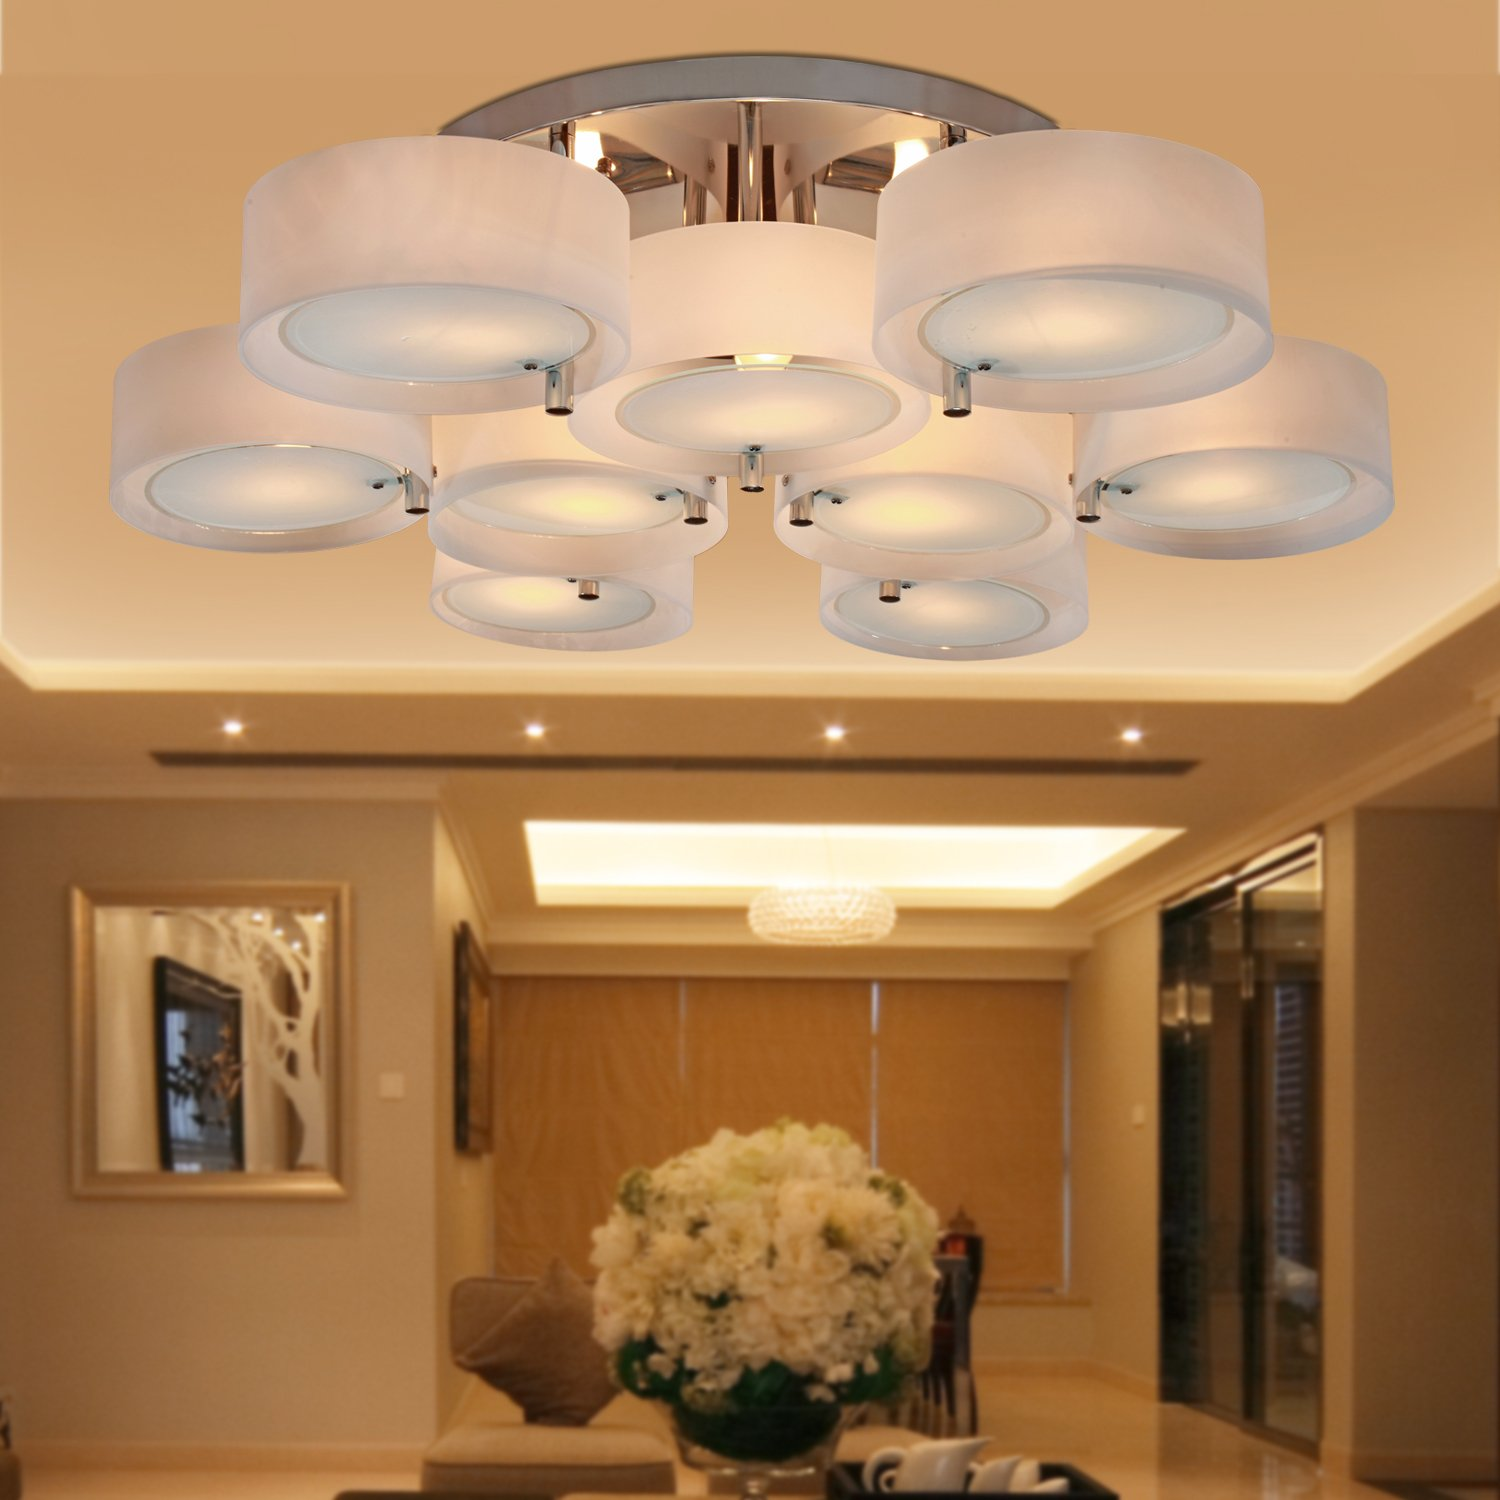 Amazon lightinthebox acrylic chandelier with 9 lights modern amazon lightinthebox acrylic chandelier with 9 lights modern flush mount ceiling light fixture fit for study roomoffice bedroom living room chrome mozeypictures Image collections